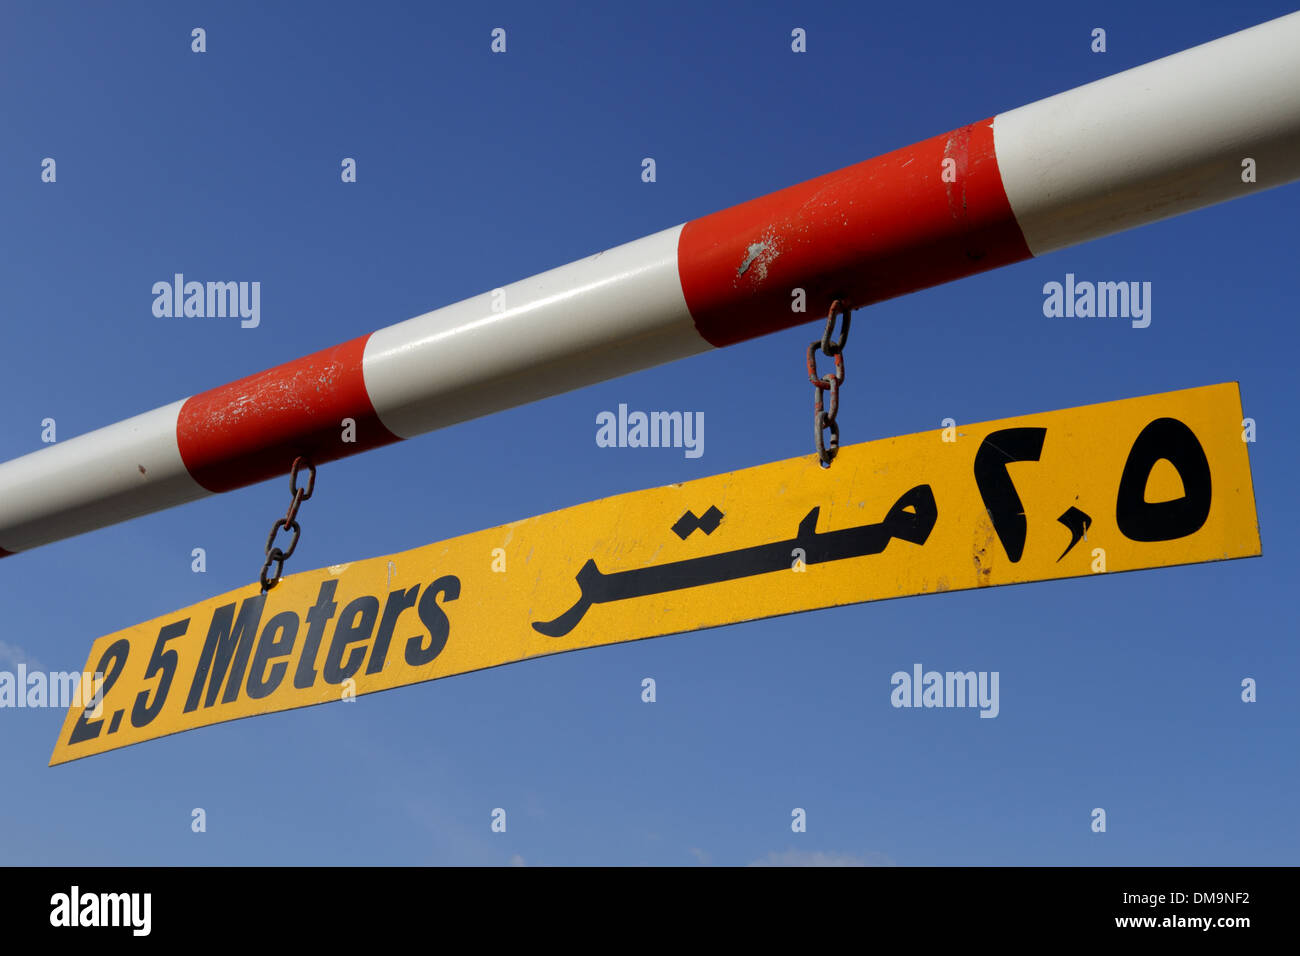 Maximum height warning sign in English and Arabic against a blue sky, Kingdom of Bahrain - Stock Image